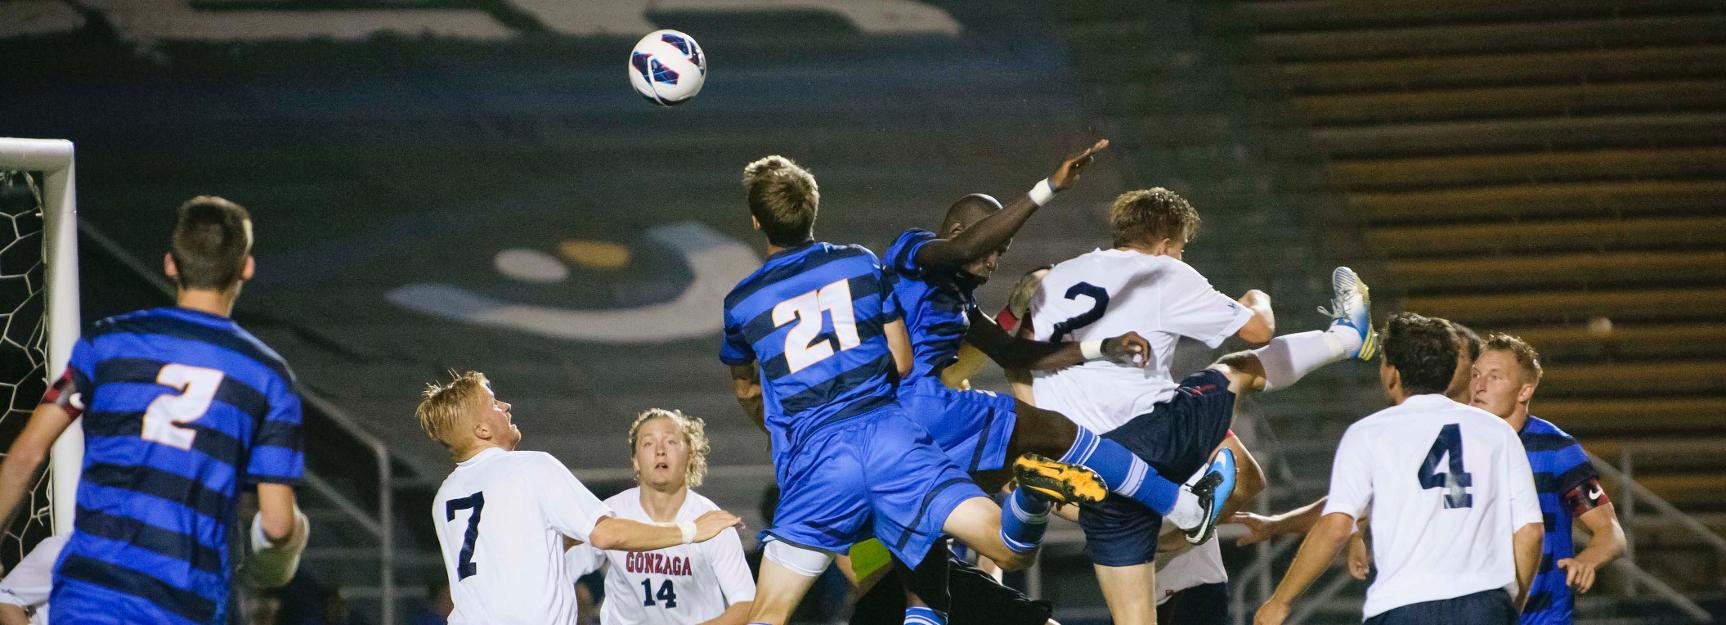 Nick DePuy and Goffin Boyoko fight to win a header (Photo by Tony Mastres)